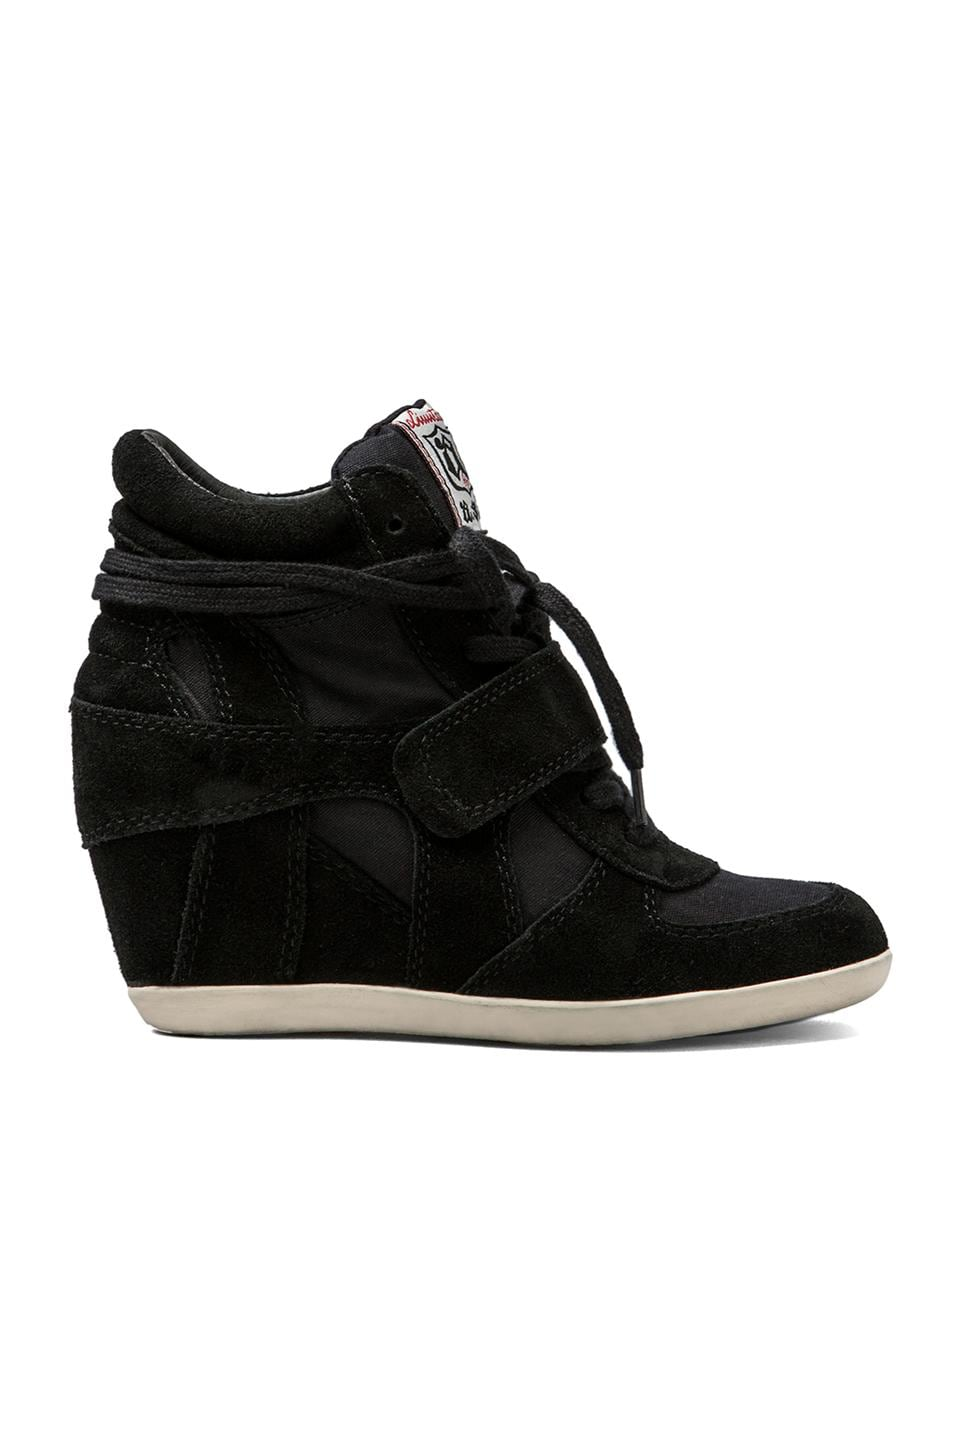 Ash Bowie Wedge Sneaker in Black